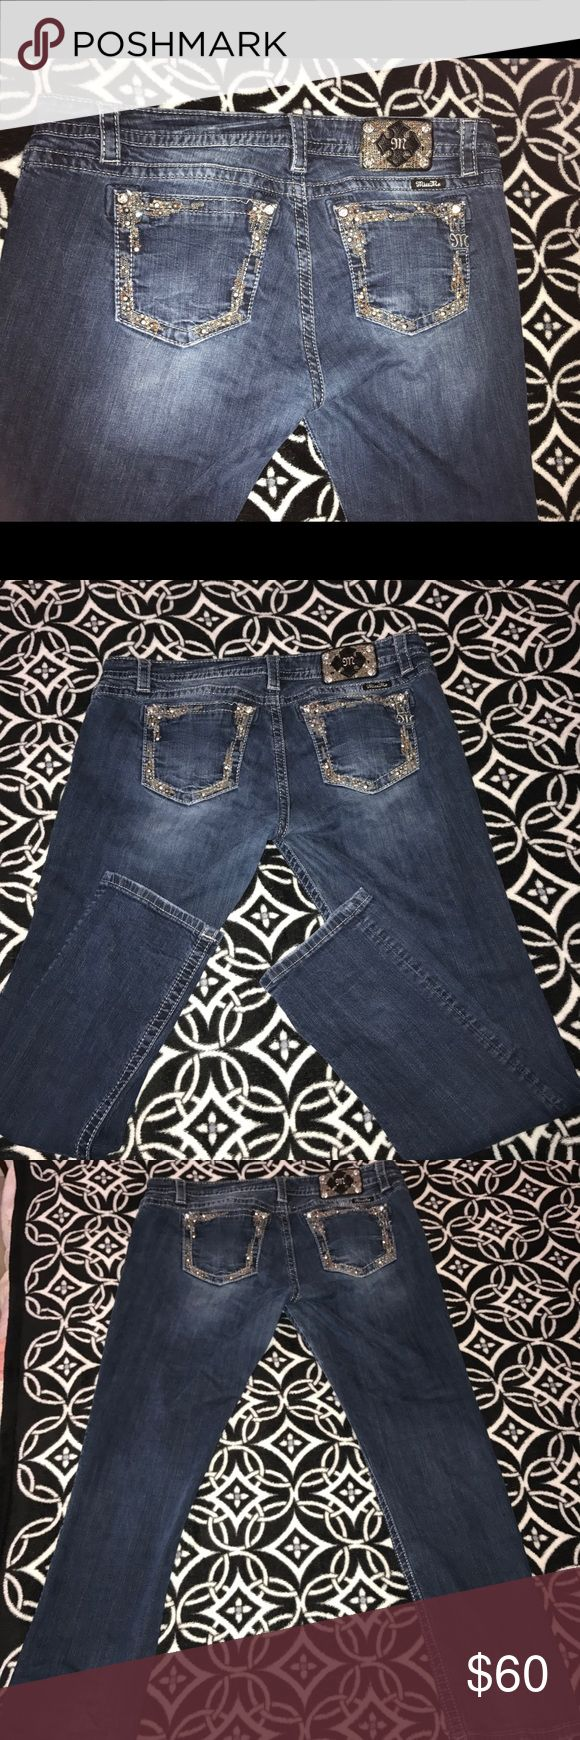 Miss Me Skinny Jeans Size 33 Inseam 31 Miss Me Skinny Jeans Size 33 Inseam 31, in good condition! They're super comfortable!! Miss Me Jeans Skinny